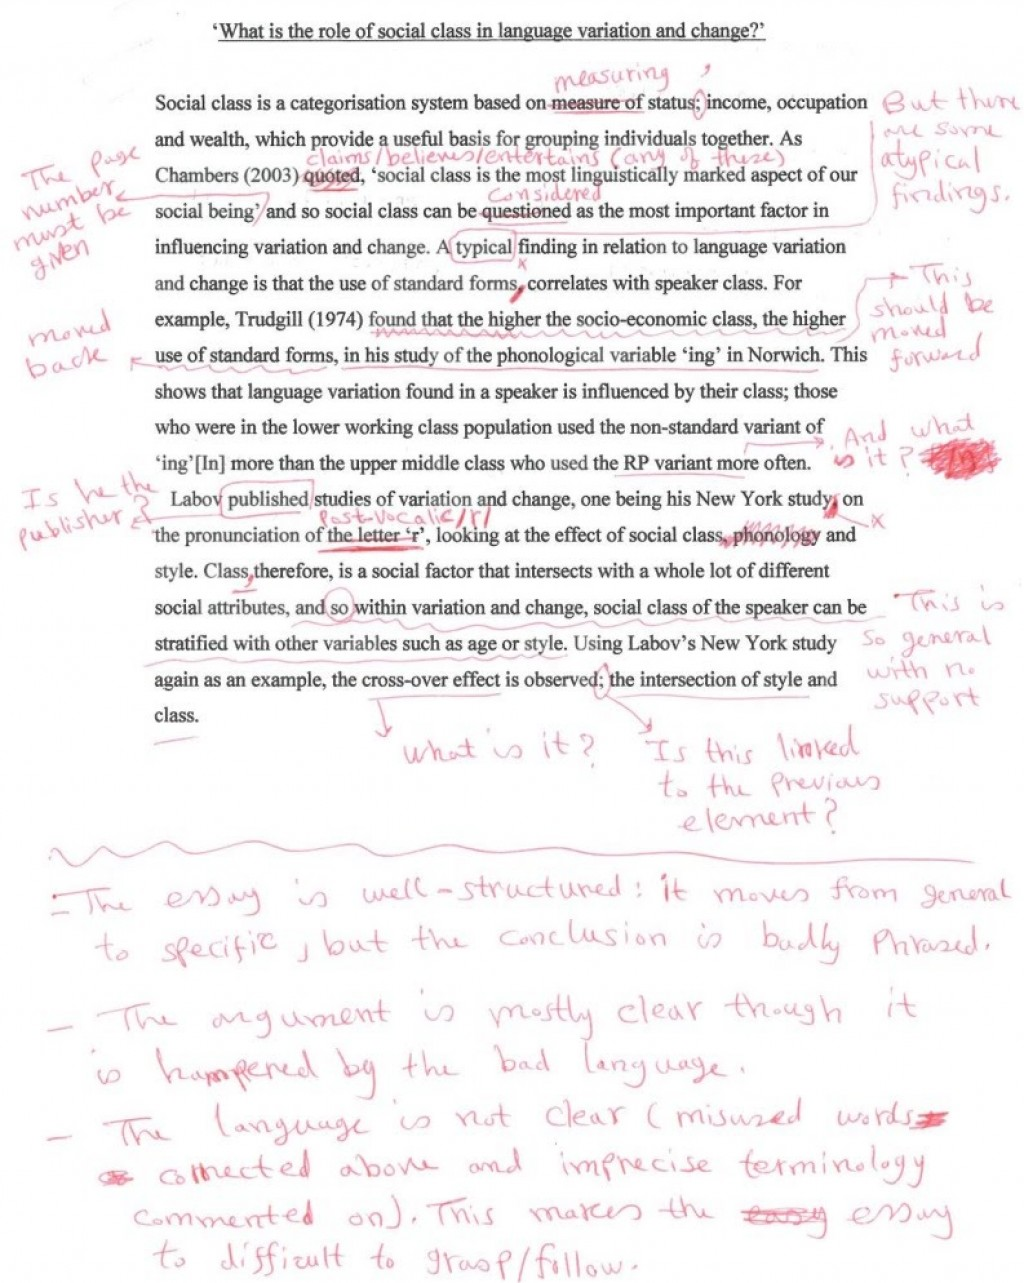 002 Form1a Essay Example About Learning From Fascinating Mistakes My Your Large